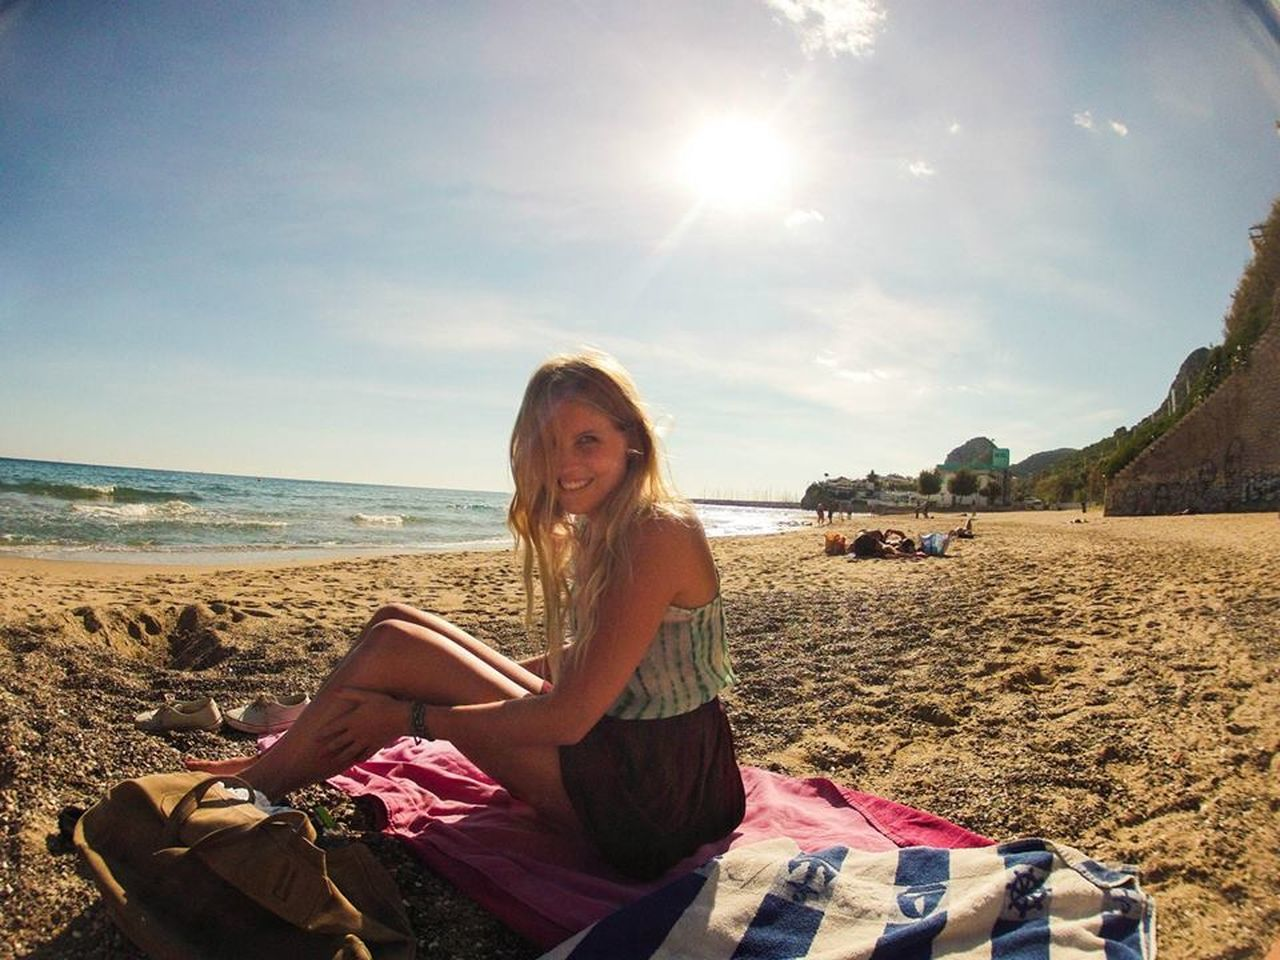 beach, nature, sitting, looking at camera, one person, sunlight, sky, vacations, smiling, sea, young adult, portrait, leisure activity, sand, young women, water, day, real people, outdoors, casual clothing, beautiful woman, beauty in nature, happiness, full length, lifestyles, relaxation, blond hair, horizon over water, adult, adults only, people